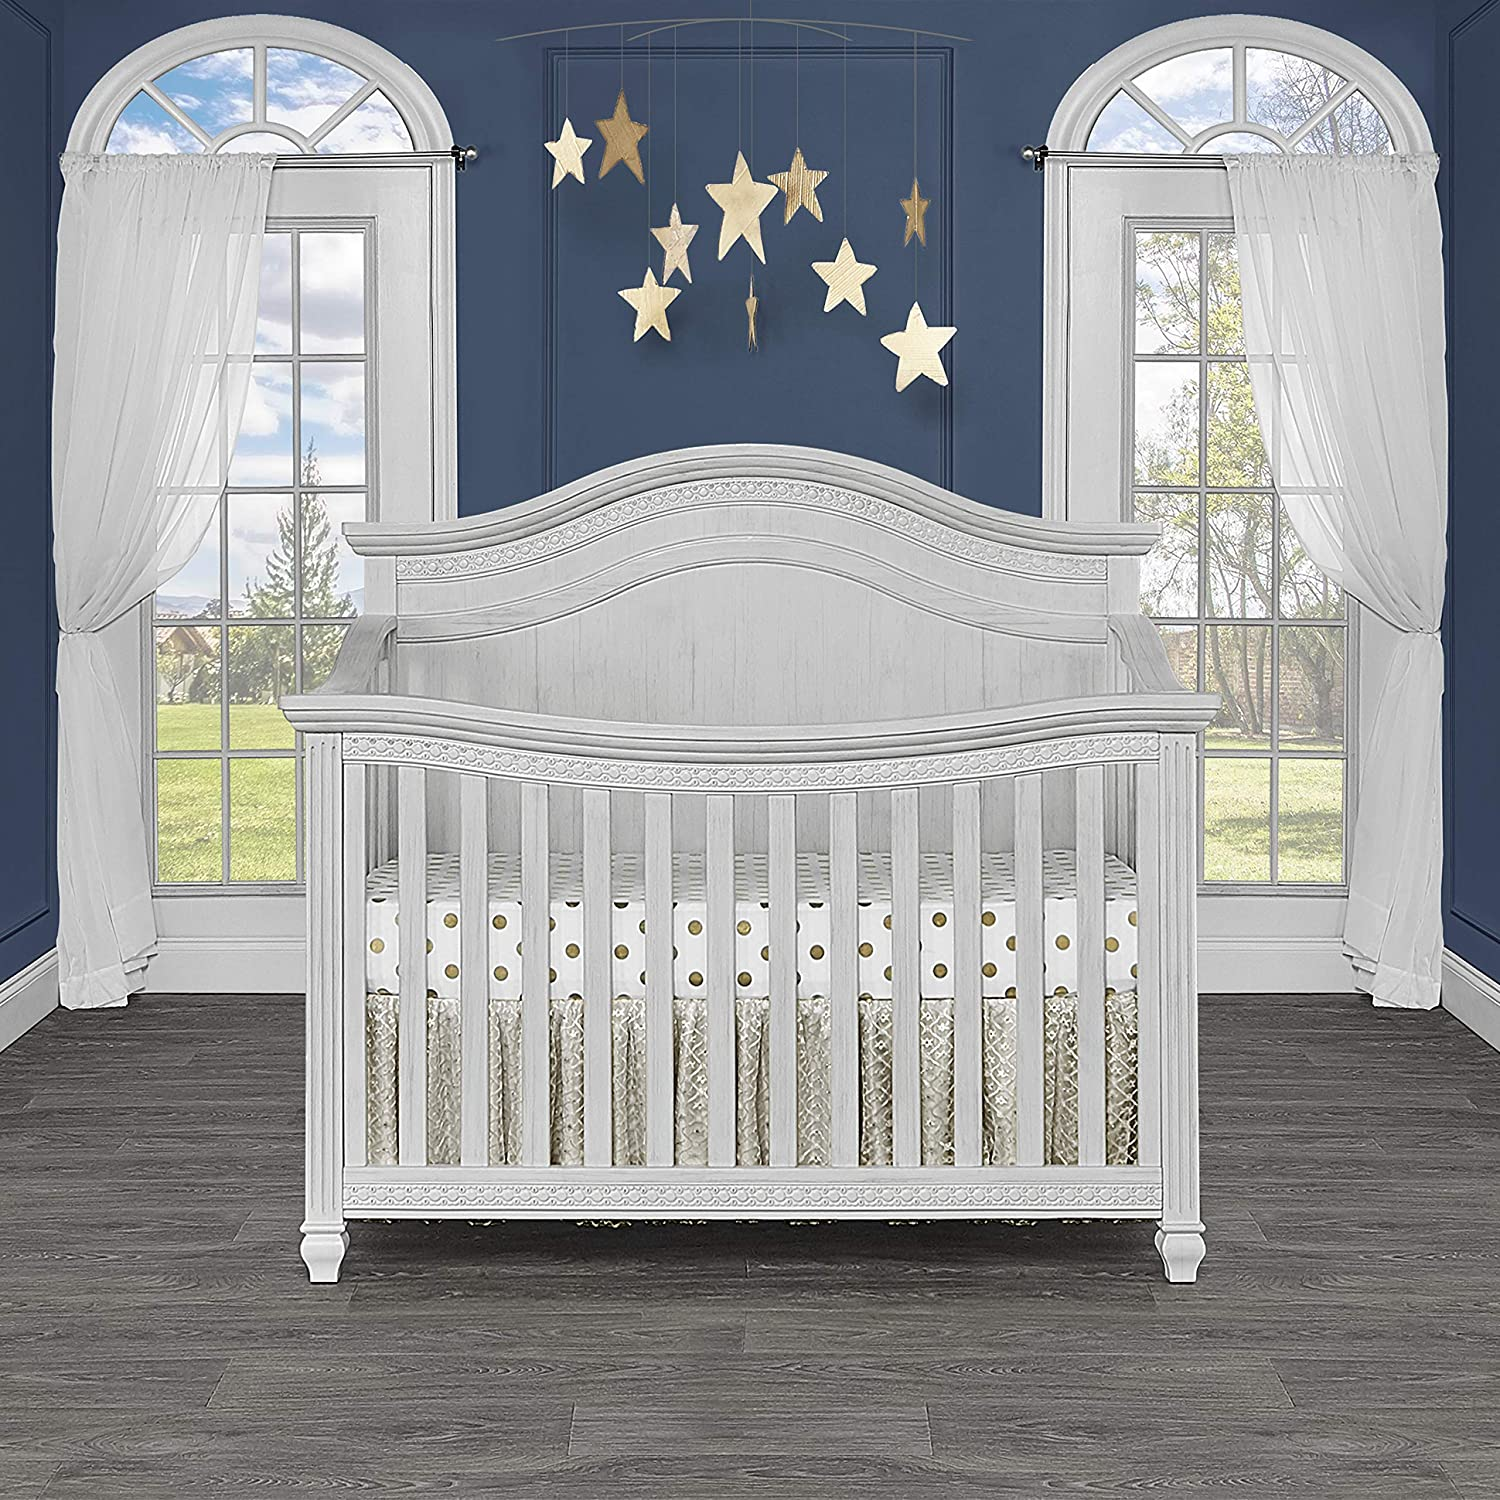 Evolur Madison 5 in 1 Curved Top Convertible Crib